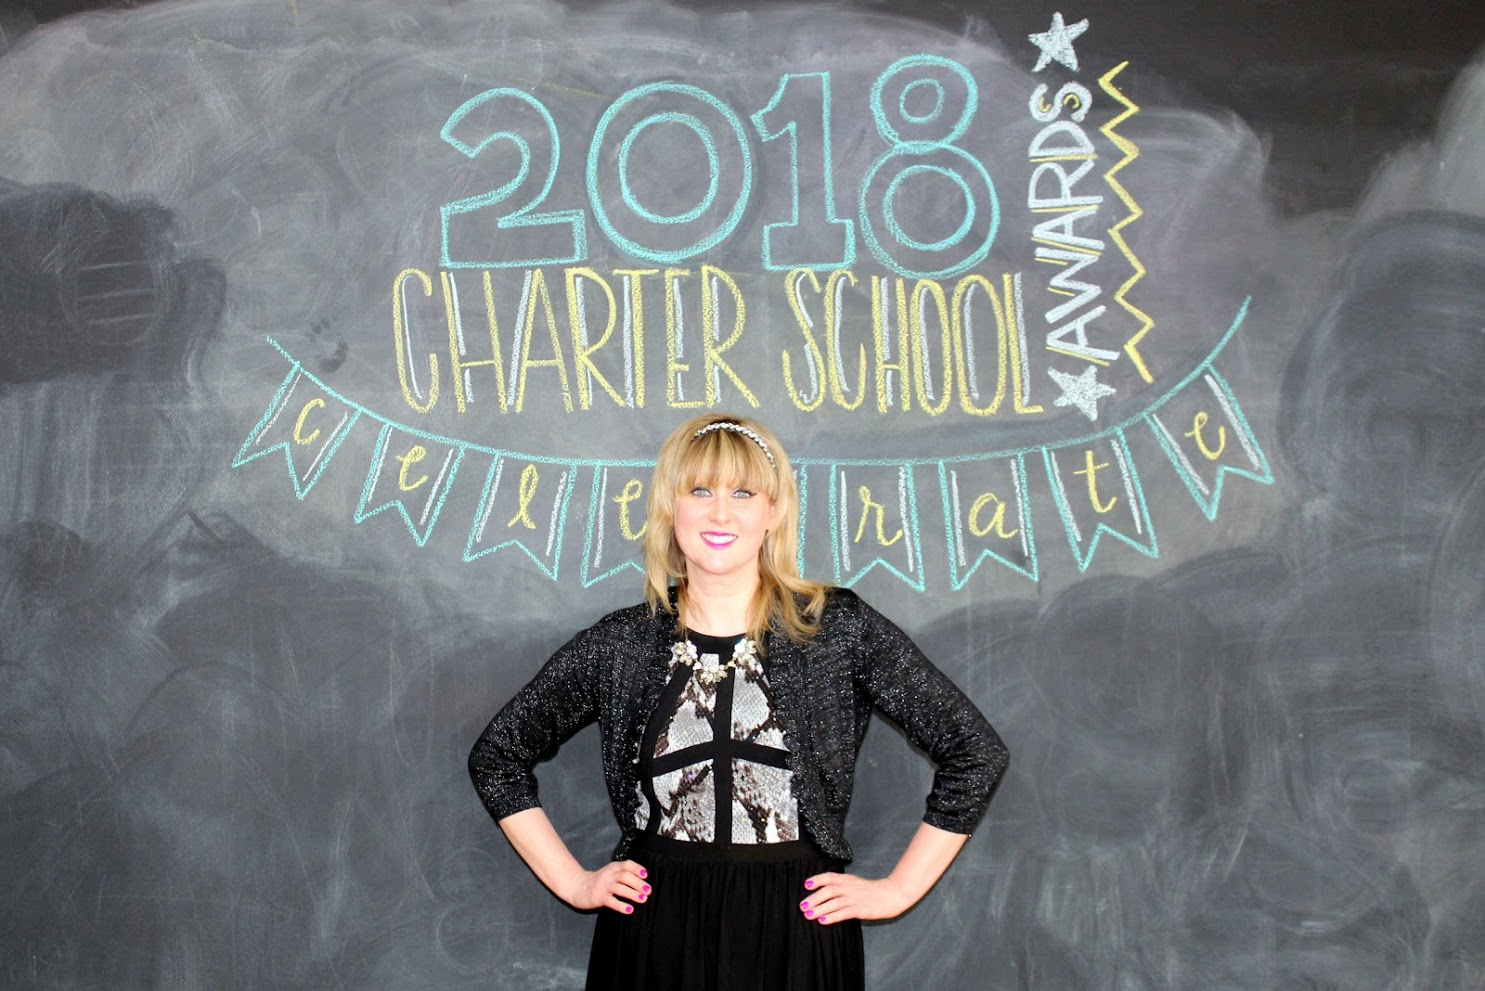 A photo of Kristina Price, 2018 Charter School Teacher of the Year winner.